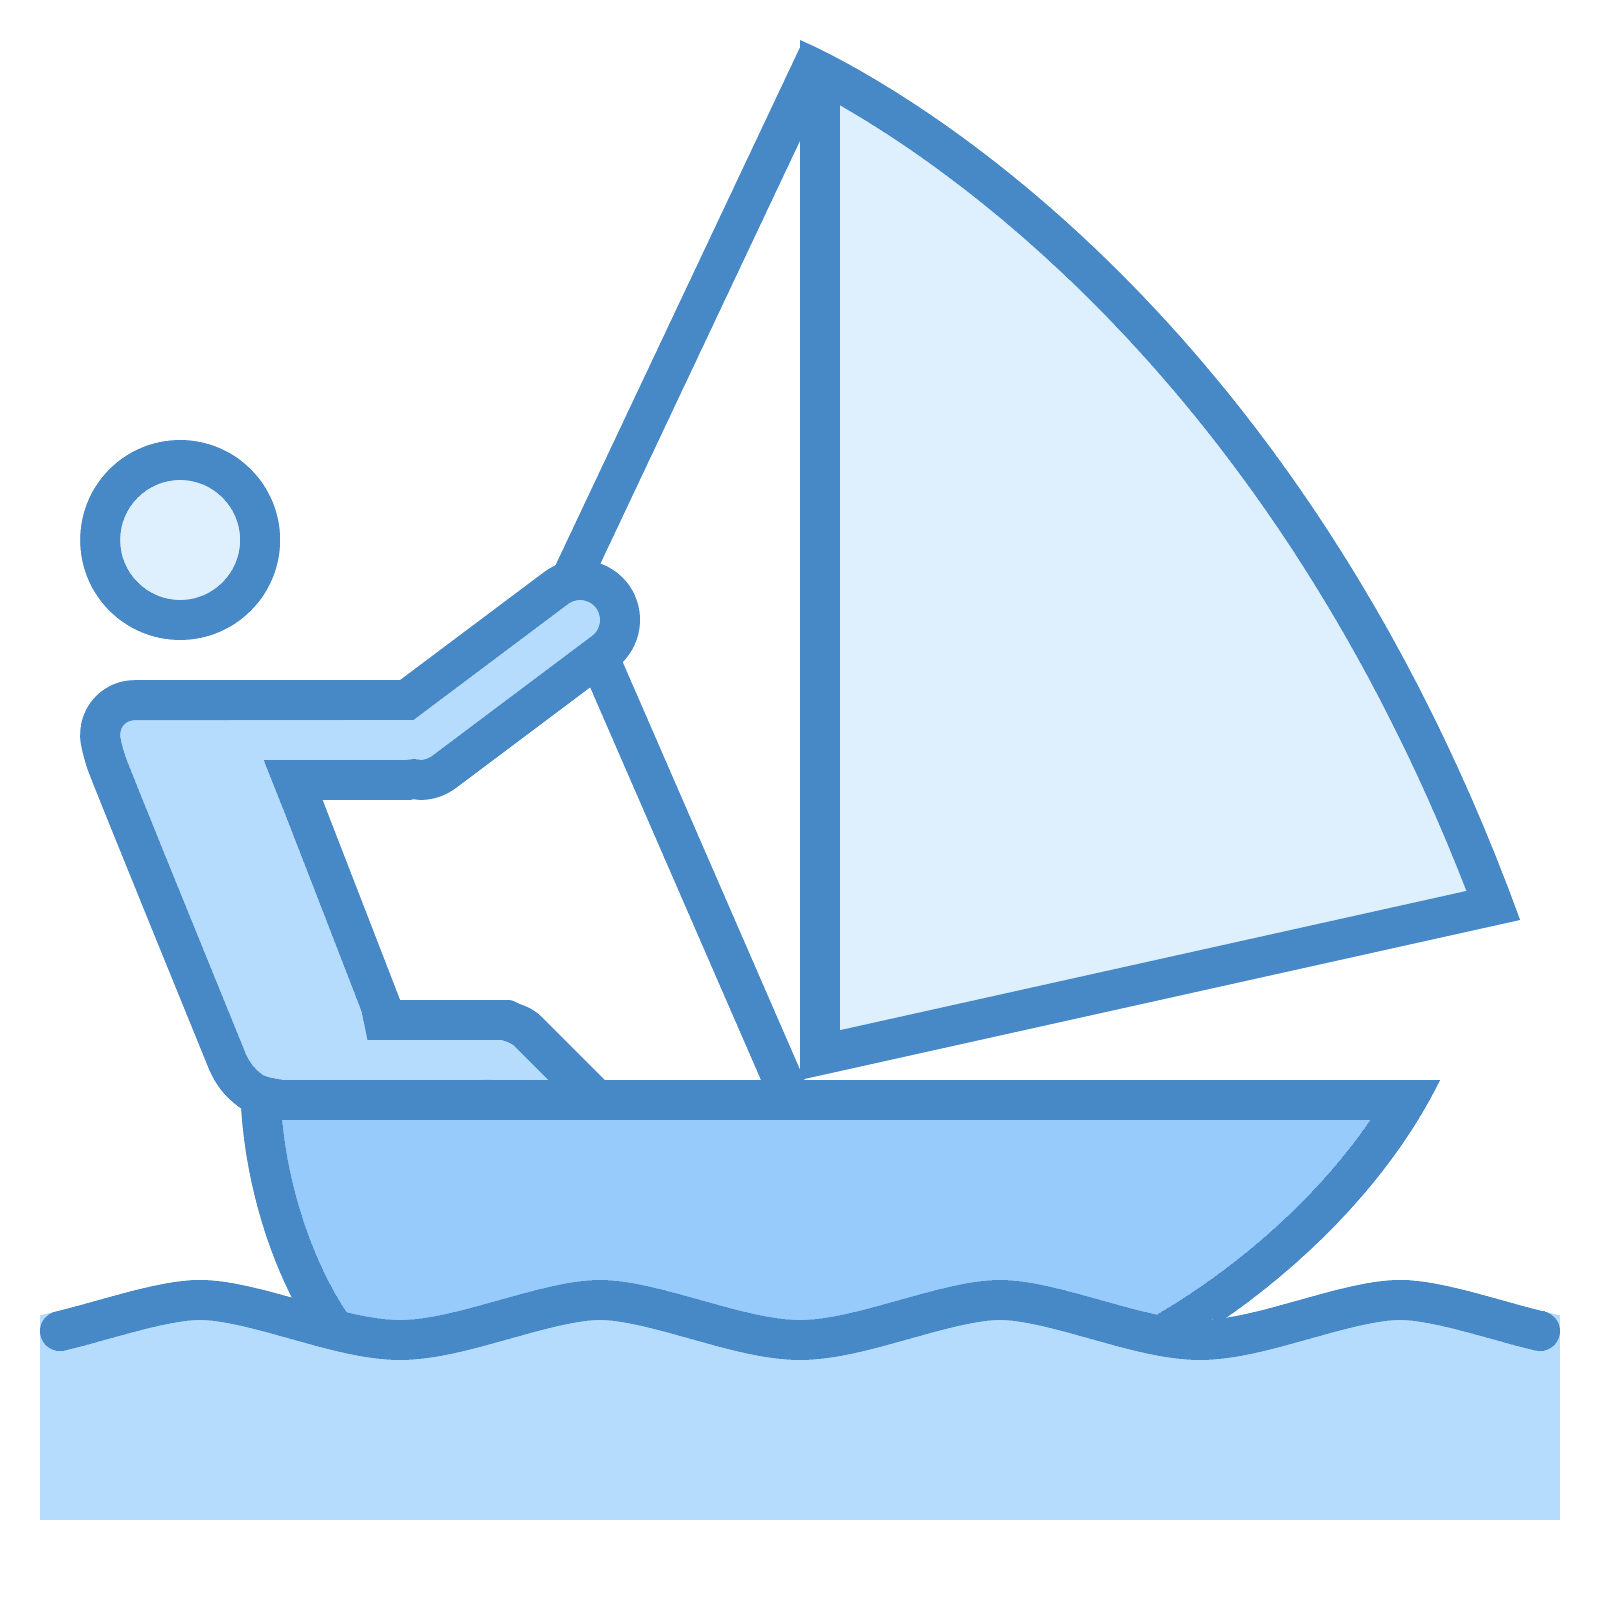 Sailing png icon. Wheel clipart yacht